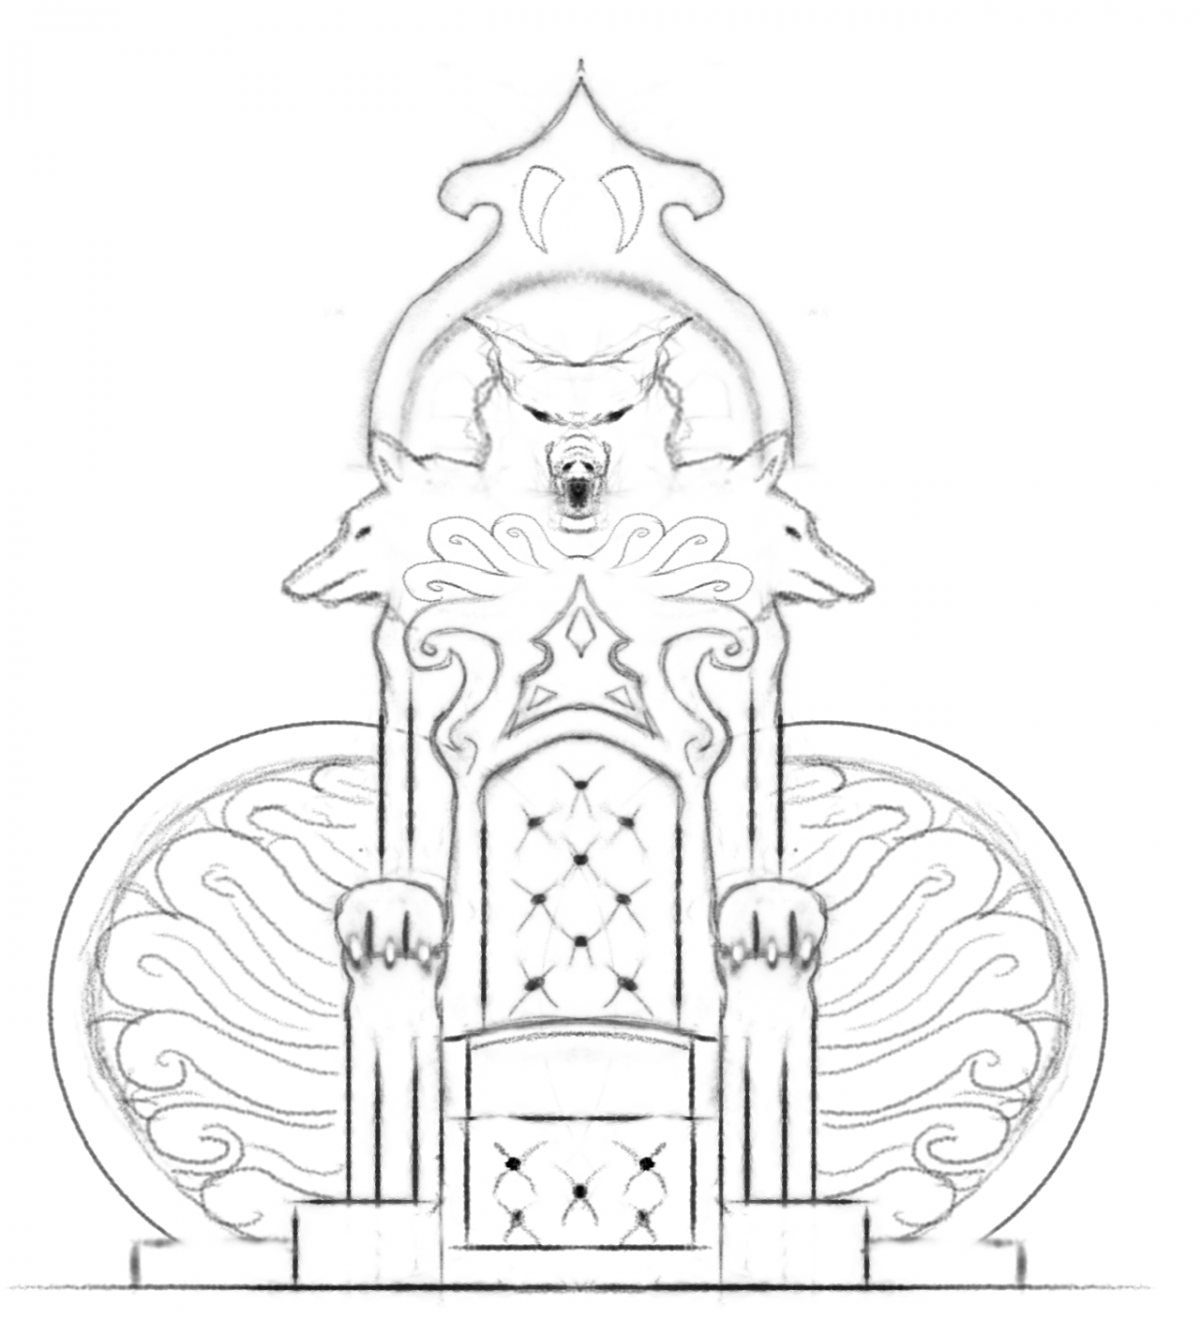 King On Throne Drawing